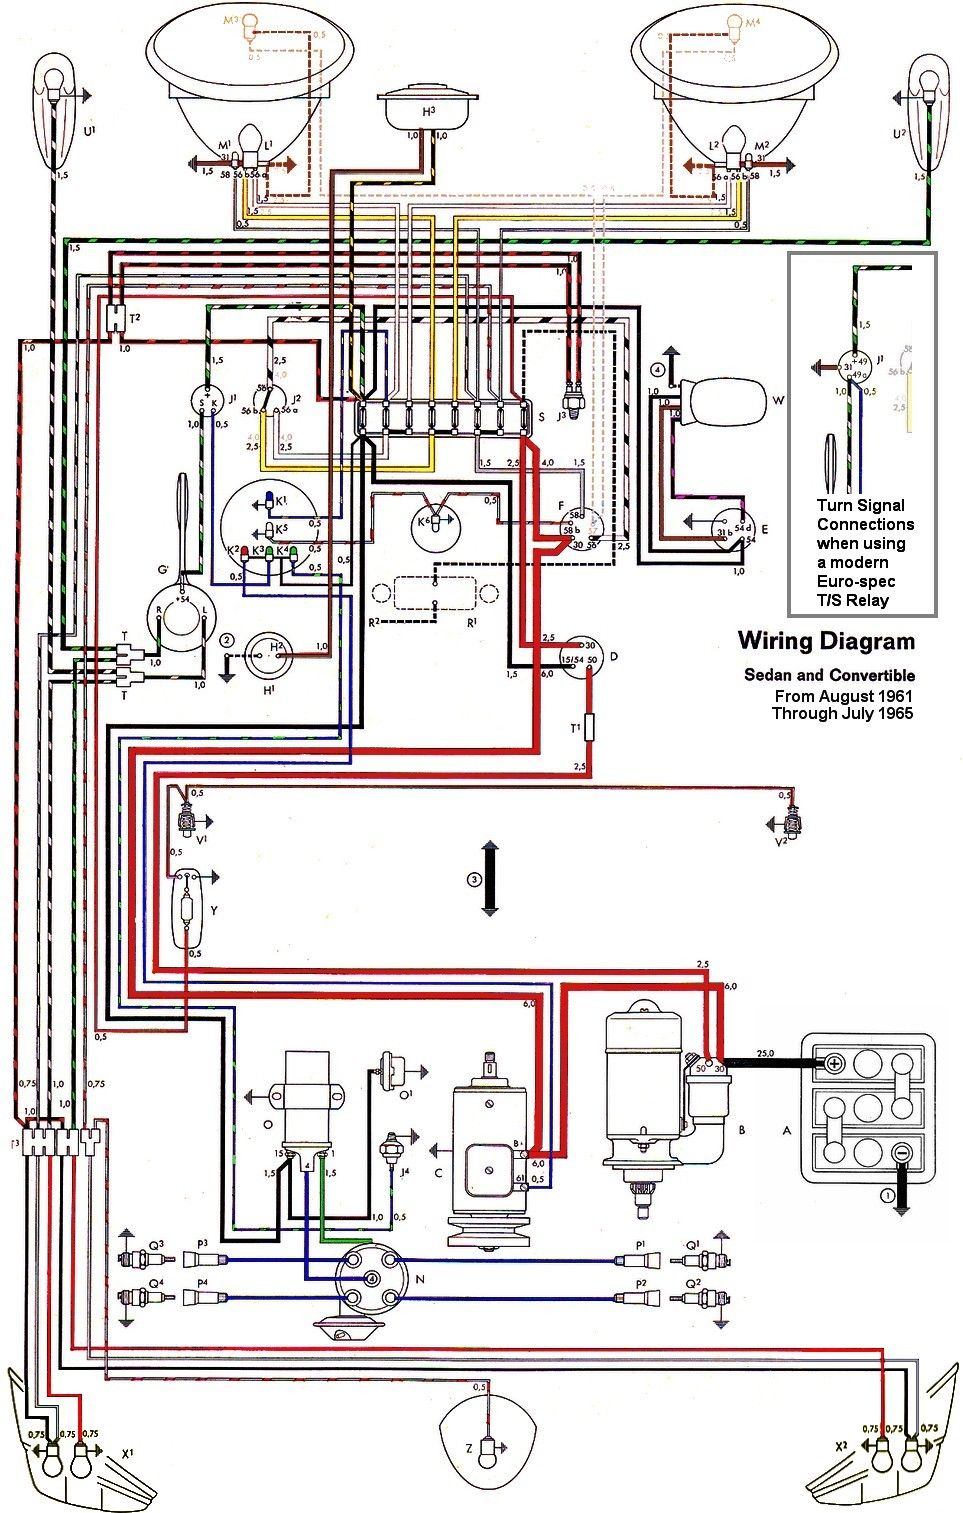 2235472c26e9b61112a110100d6ddea3 wiring diagram vw beetle sedan and convertible 1961 1965 vw 1968 vw type 3 wiring diagram at gsmx.co